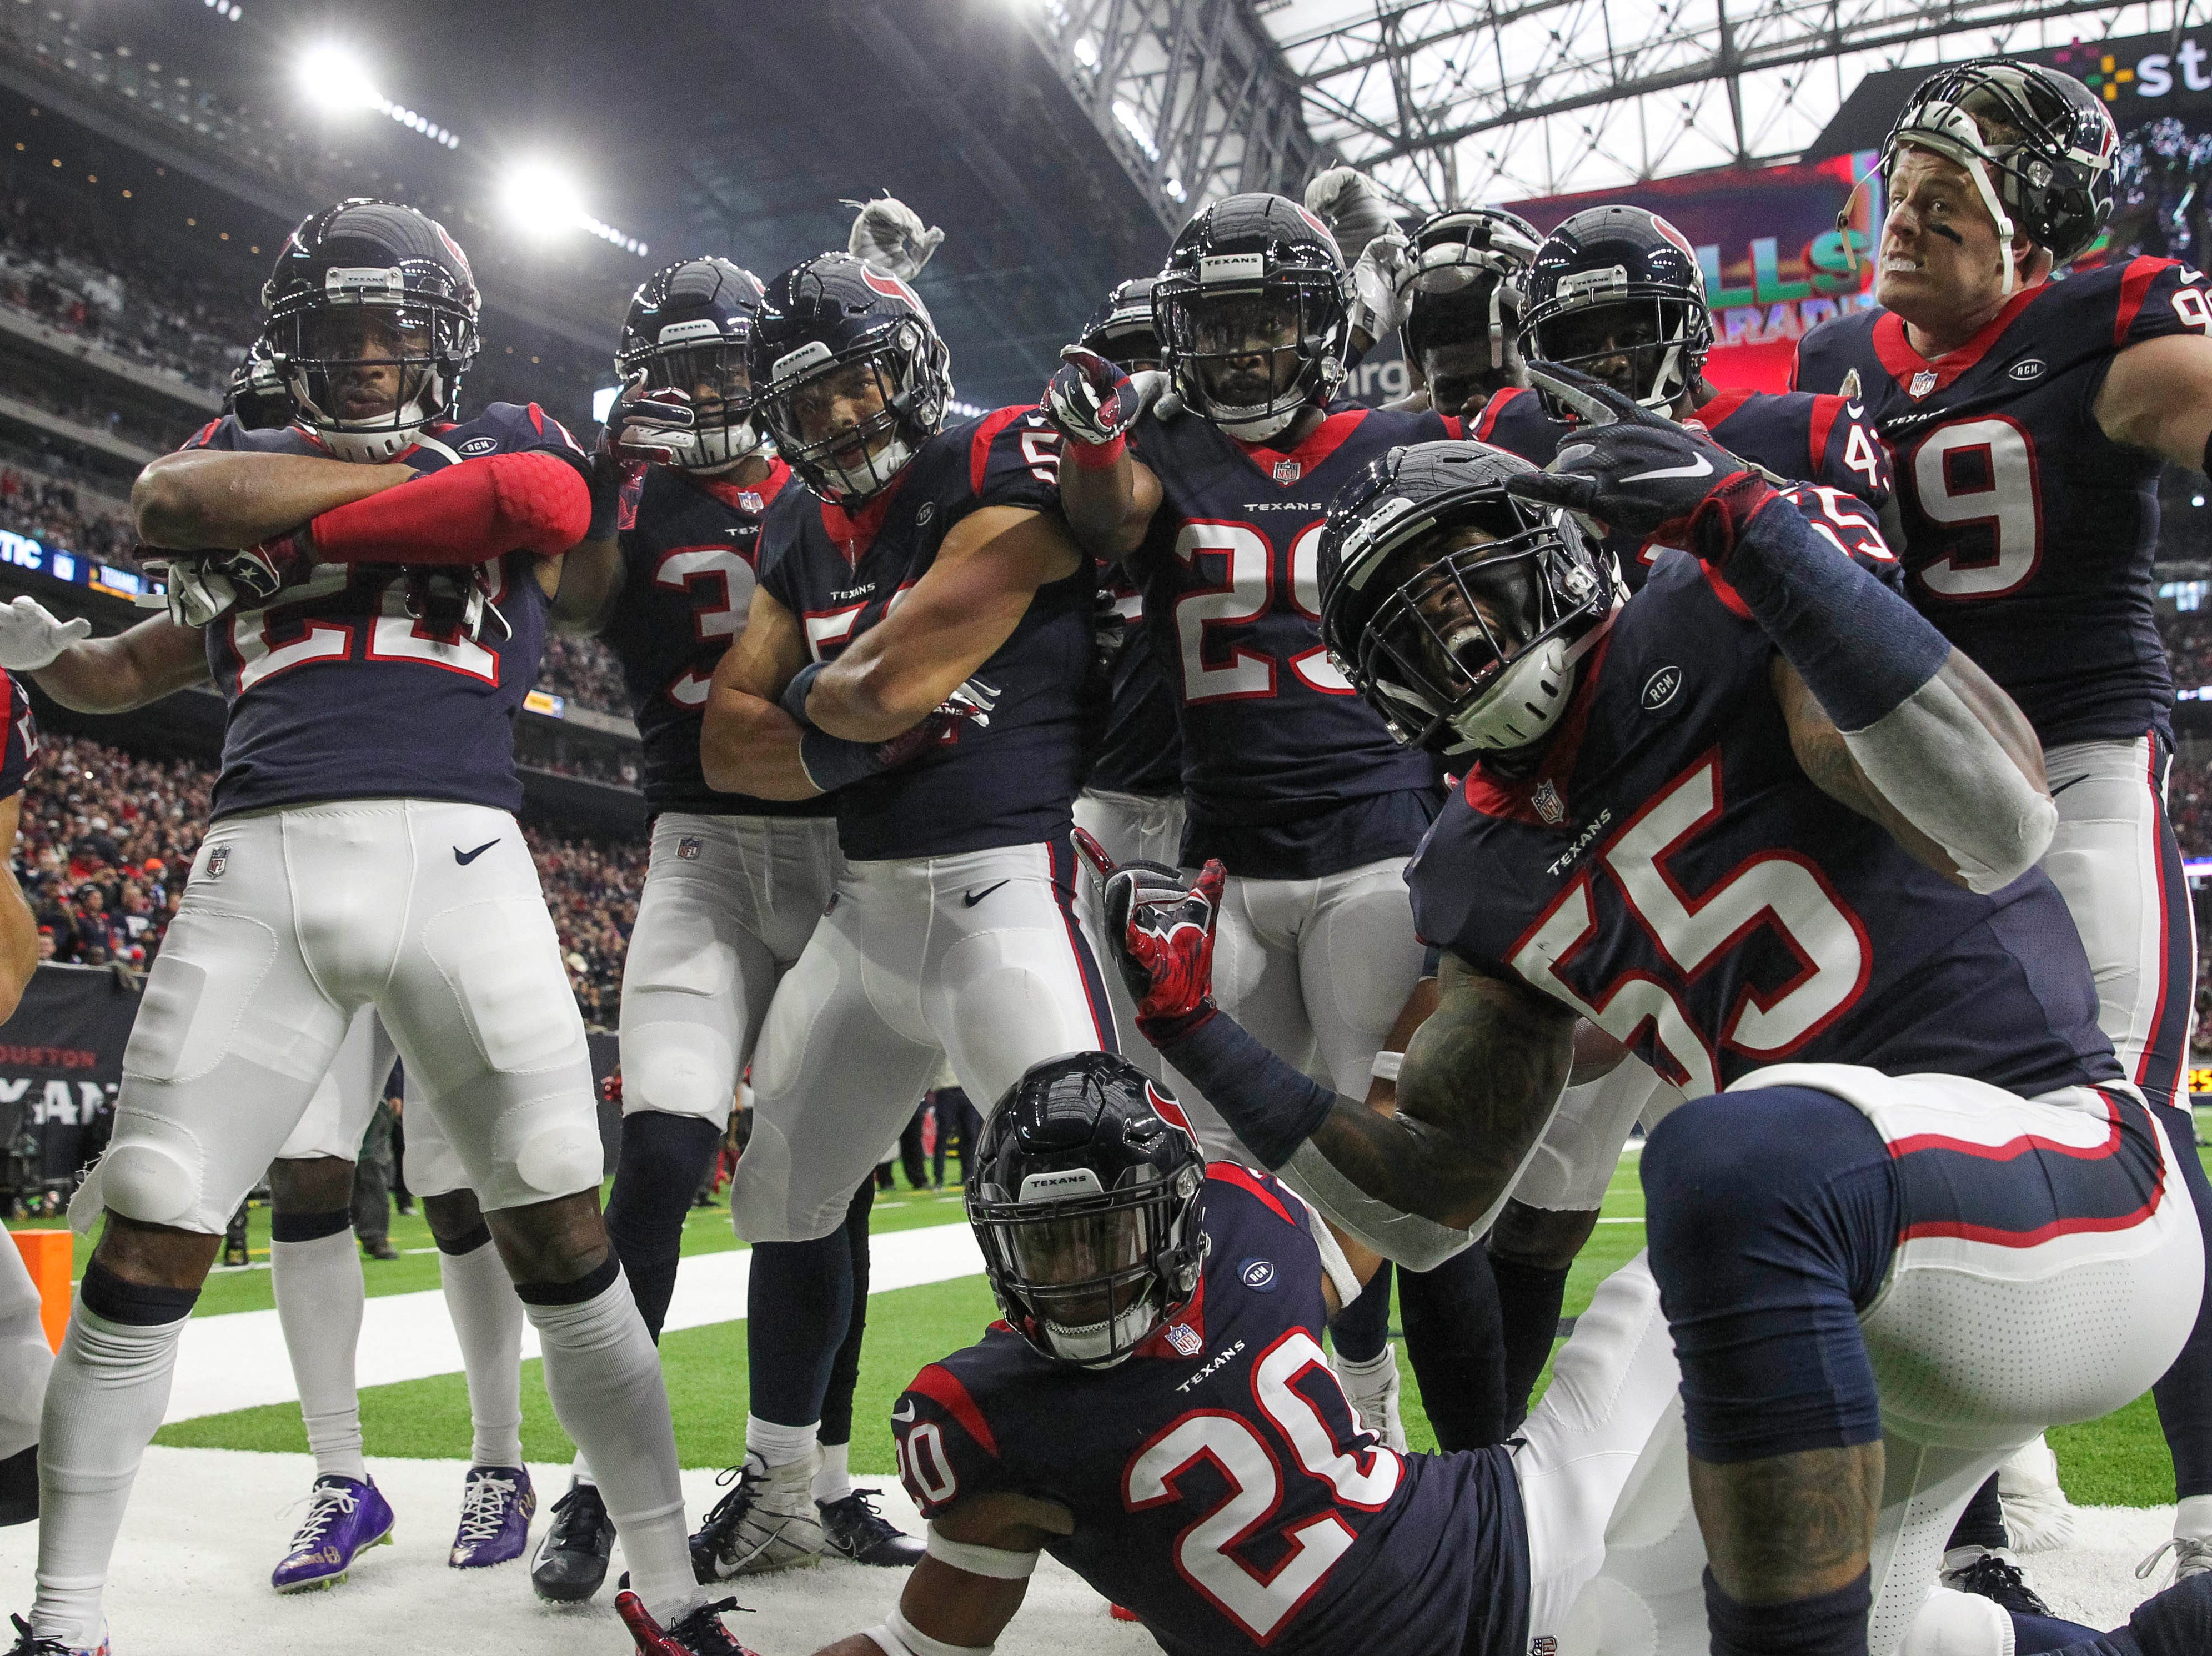 Texans players celebrate after an interception in the second quarter against the Colts.